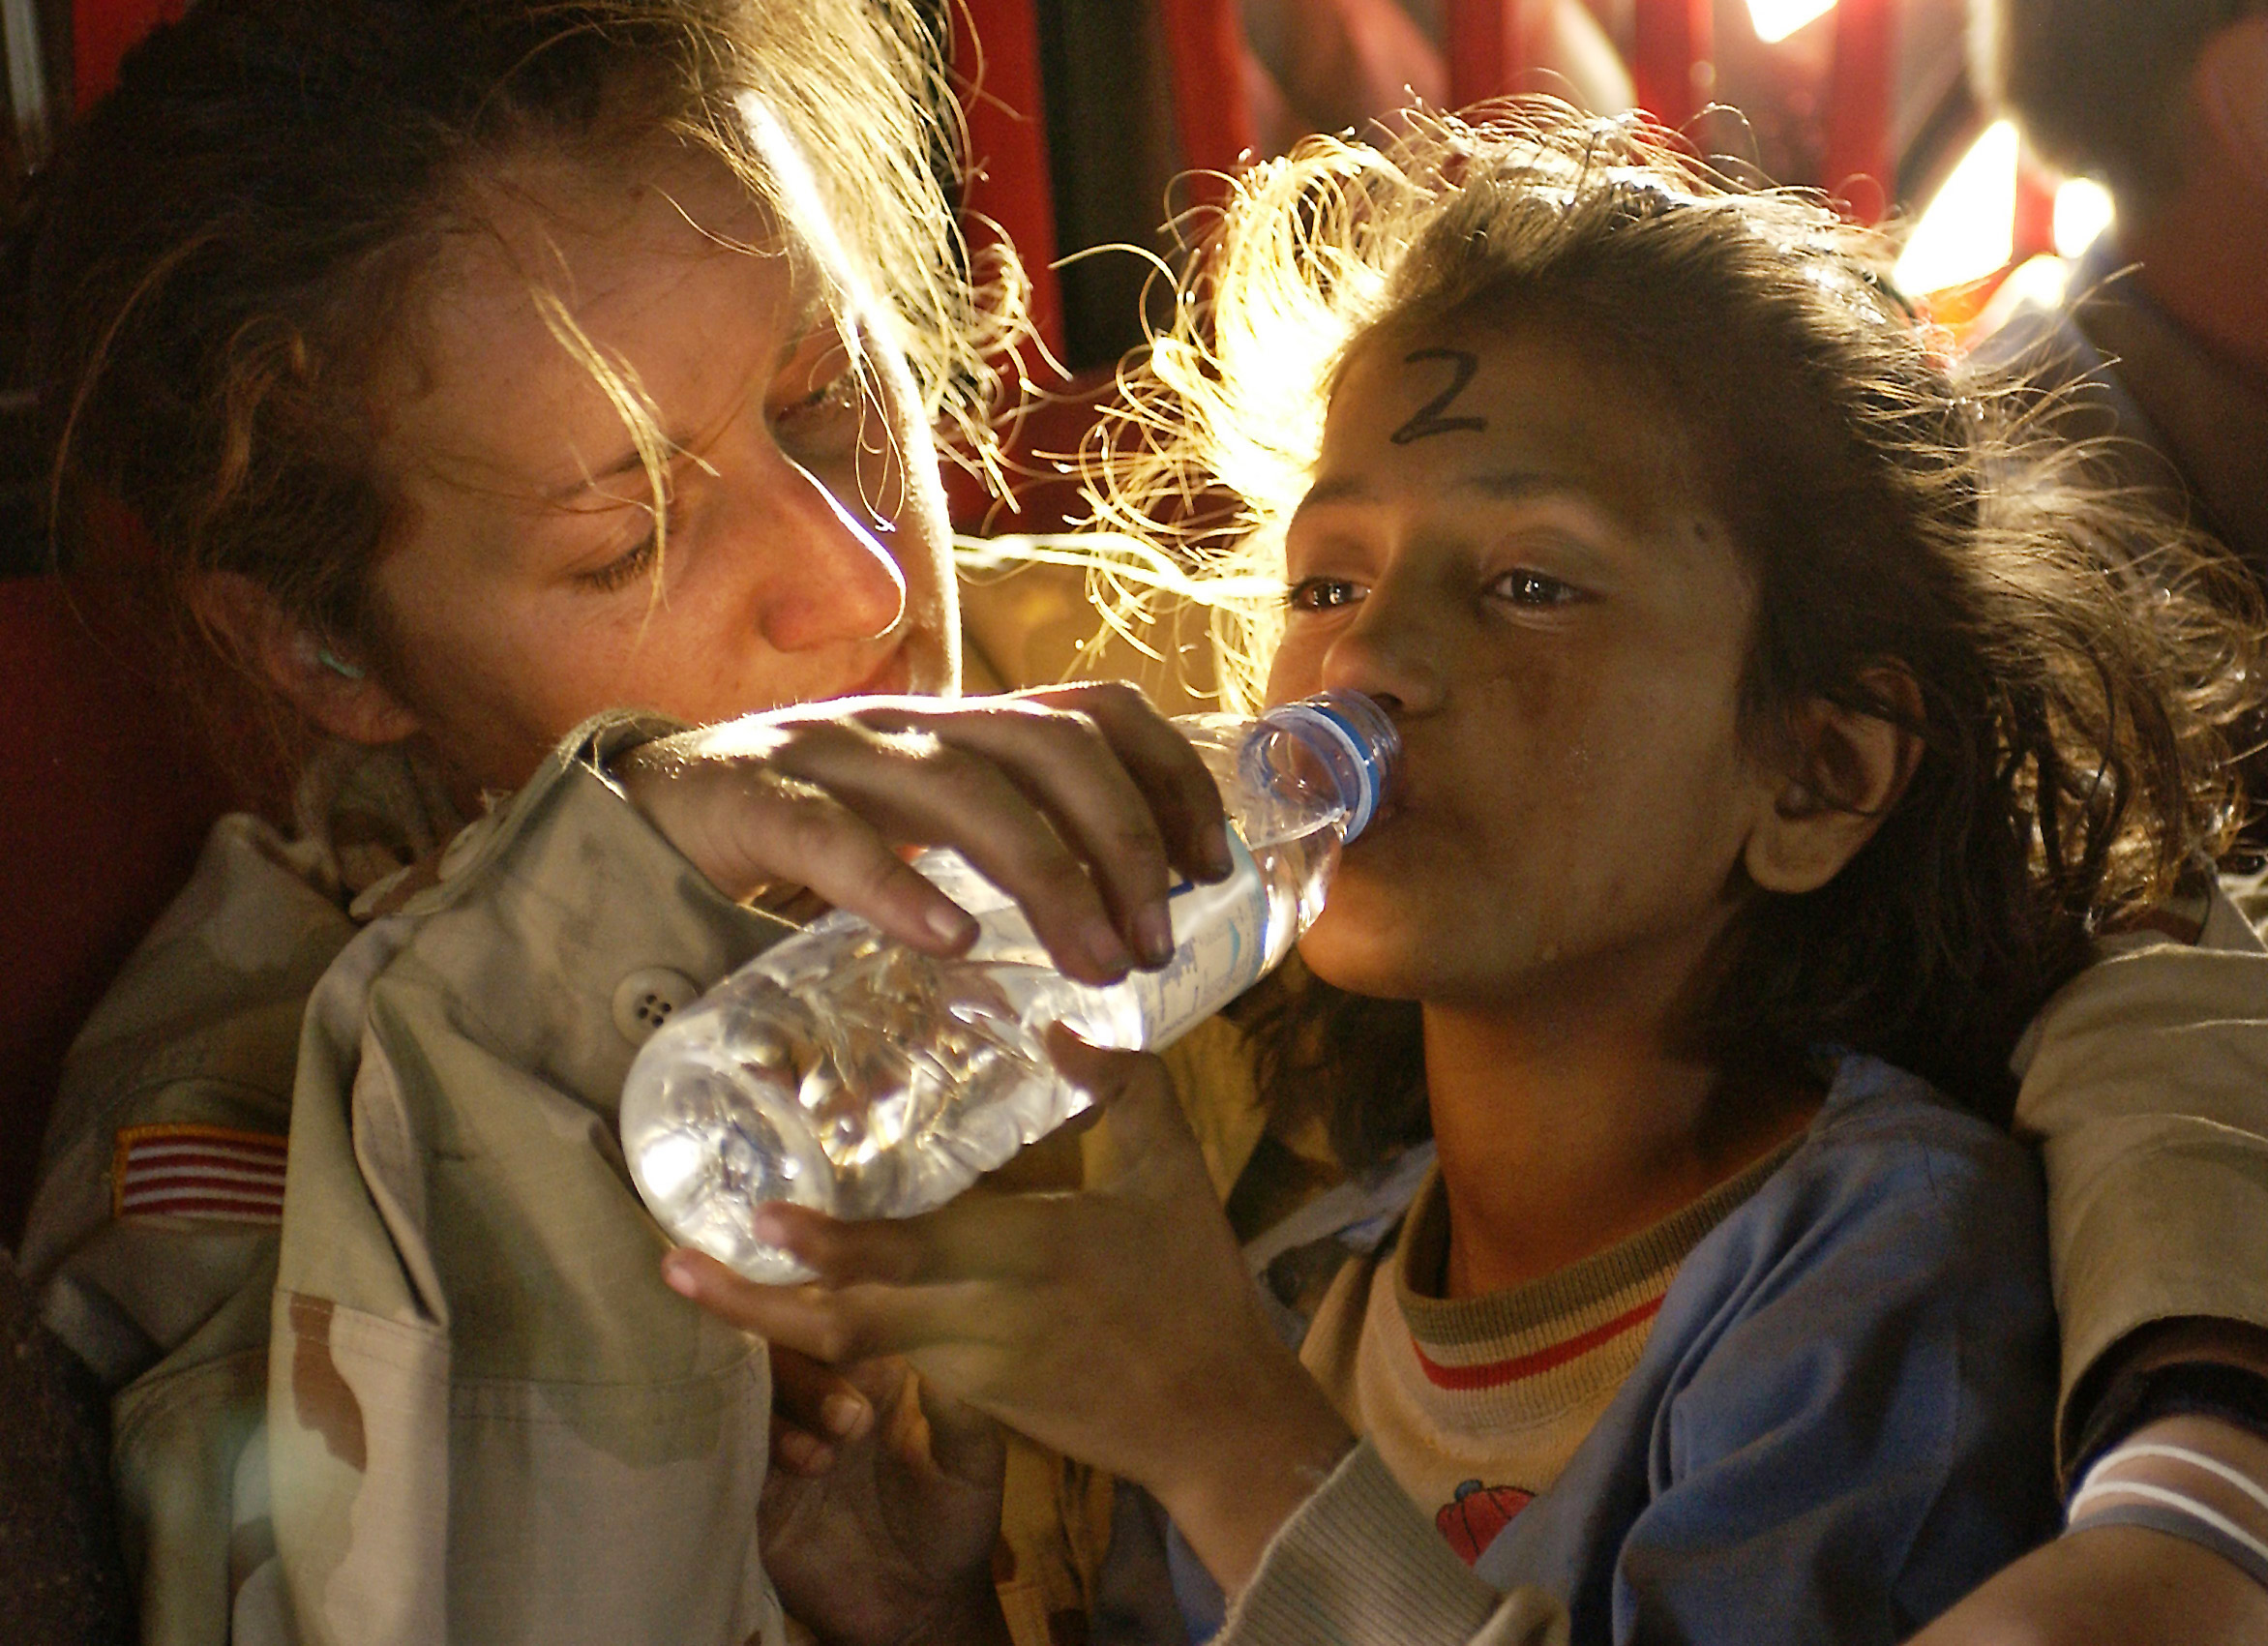 U.S. Army Sergeant Kornelia Rachwal gives a young Pakistani girl a drink of water as they are airlifted from Muzaffarabad to Islamabad, Pakistan, aboard a U.S. Army CH-47 Chinook helicopter on October 19, 2005.